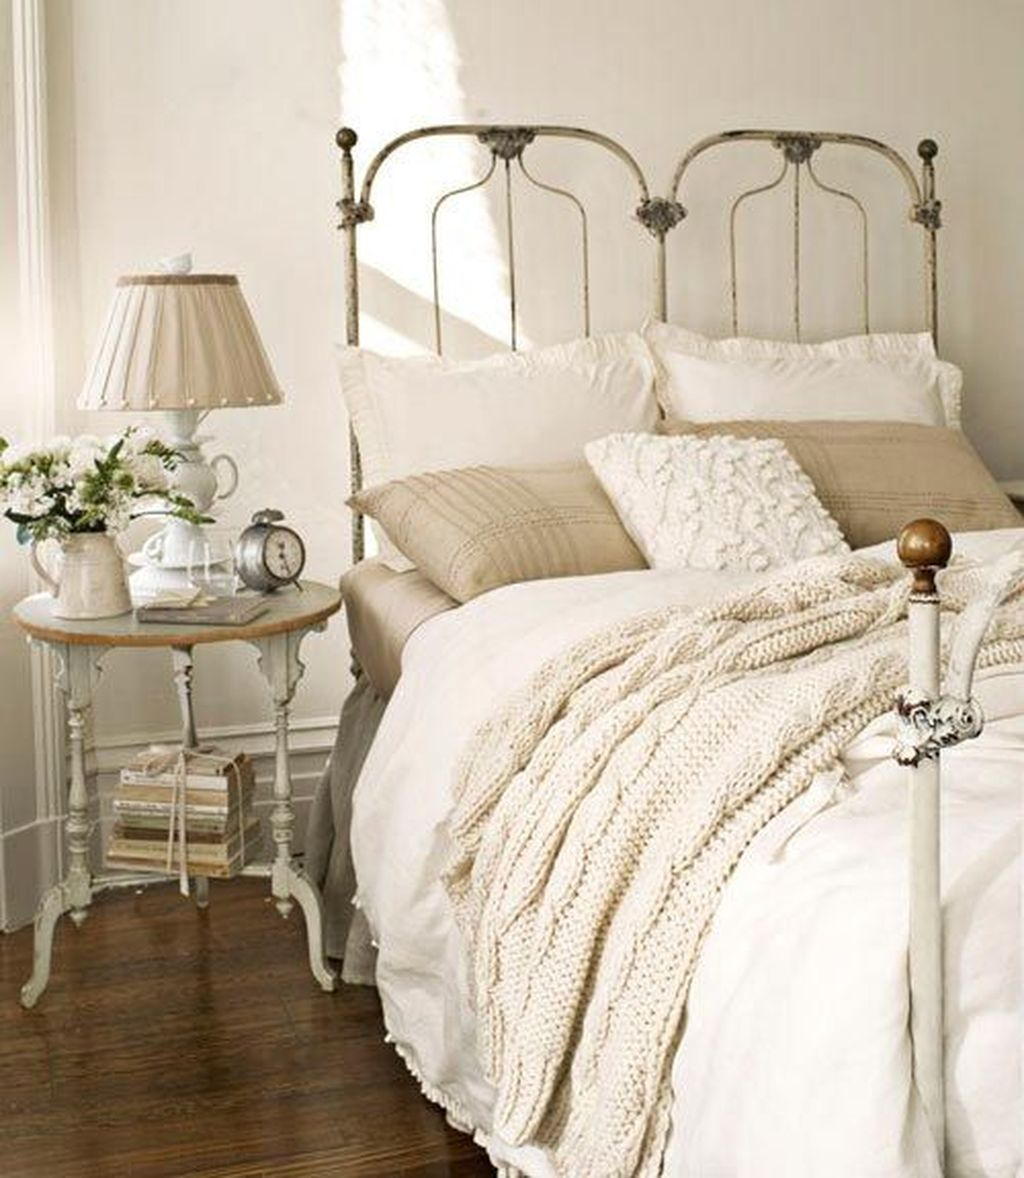 Awesome french style bedroom decor ideas 43